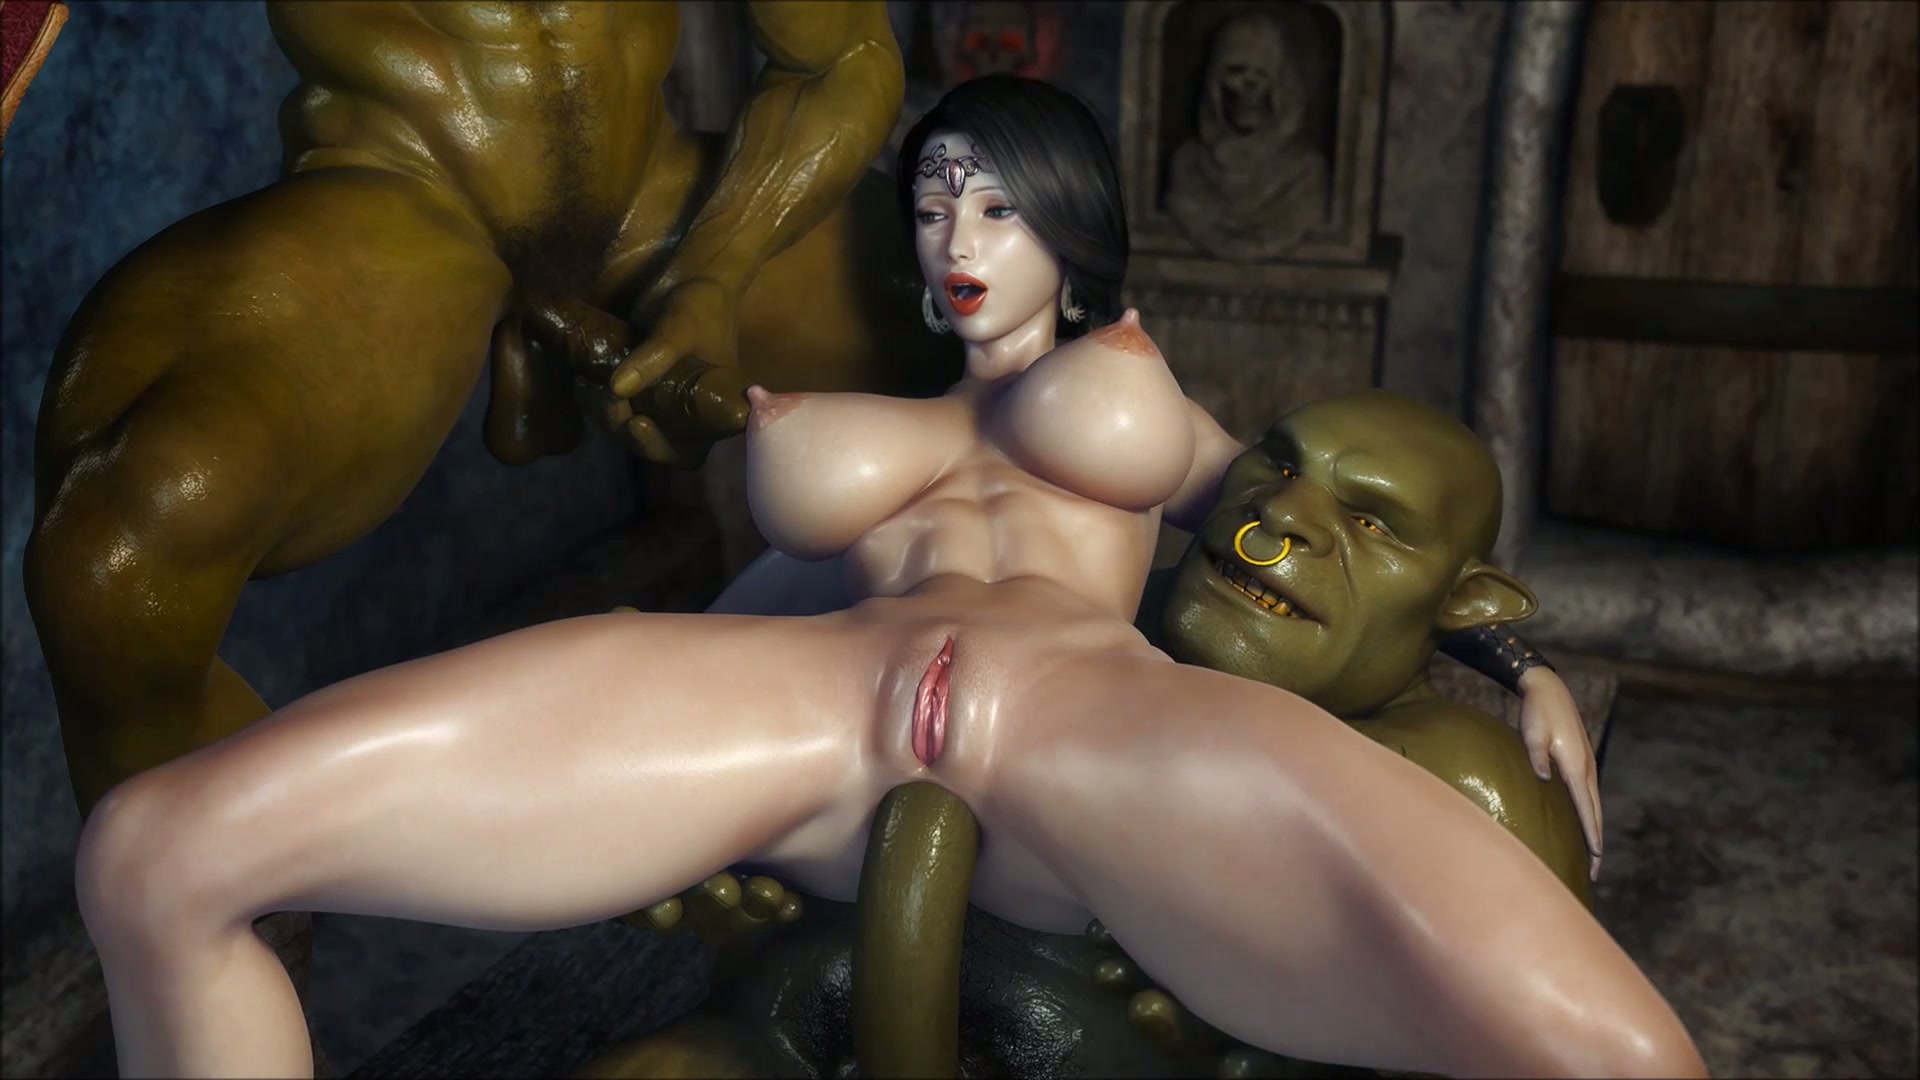 Anime porn 3d fantasy sex nackt film